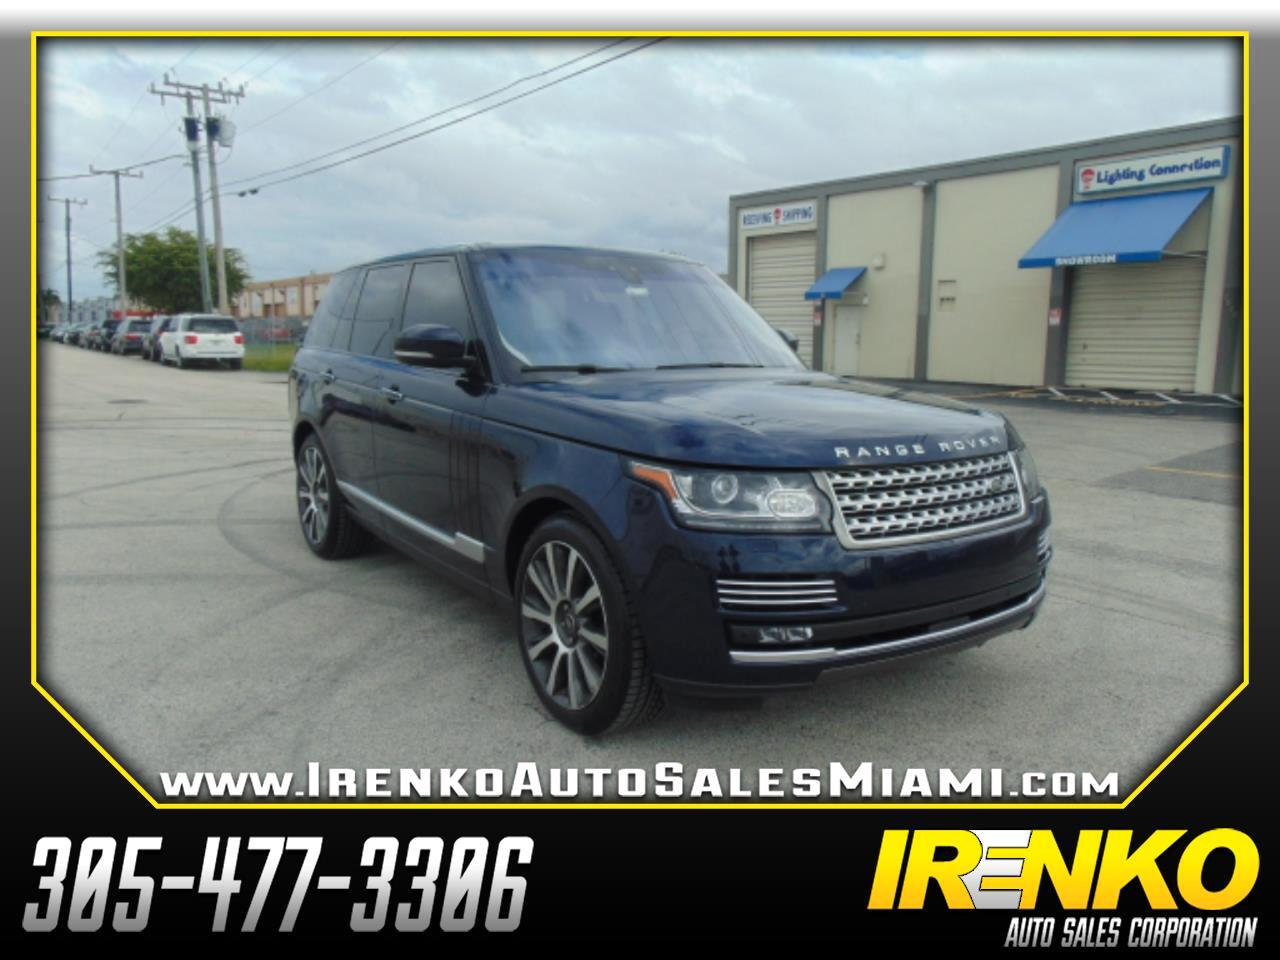 Land Rover Range Rover V8 Supercharged Autobiography SWB 2017